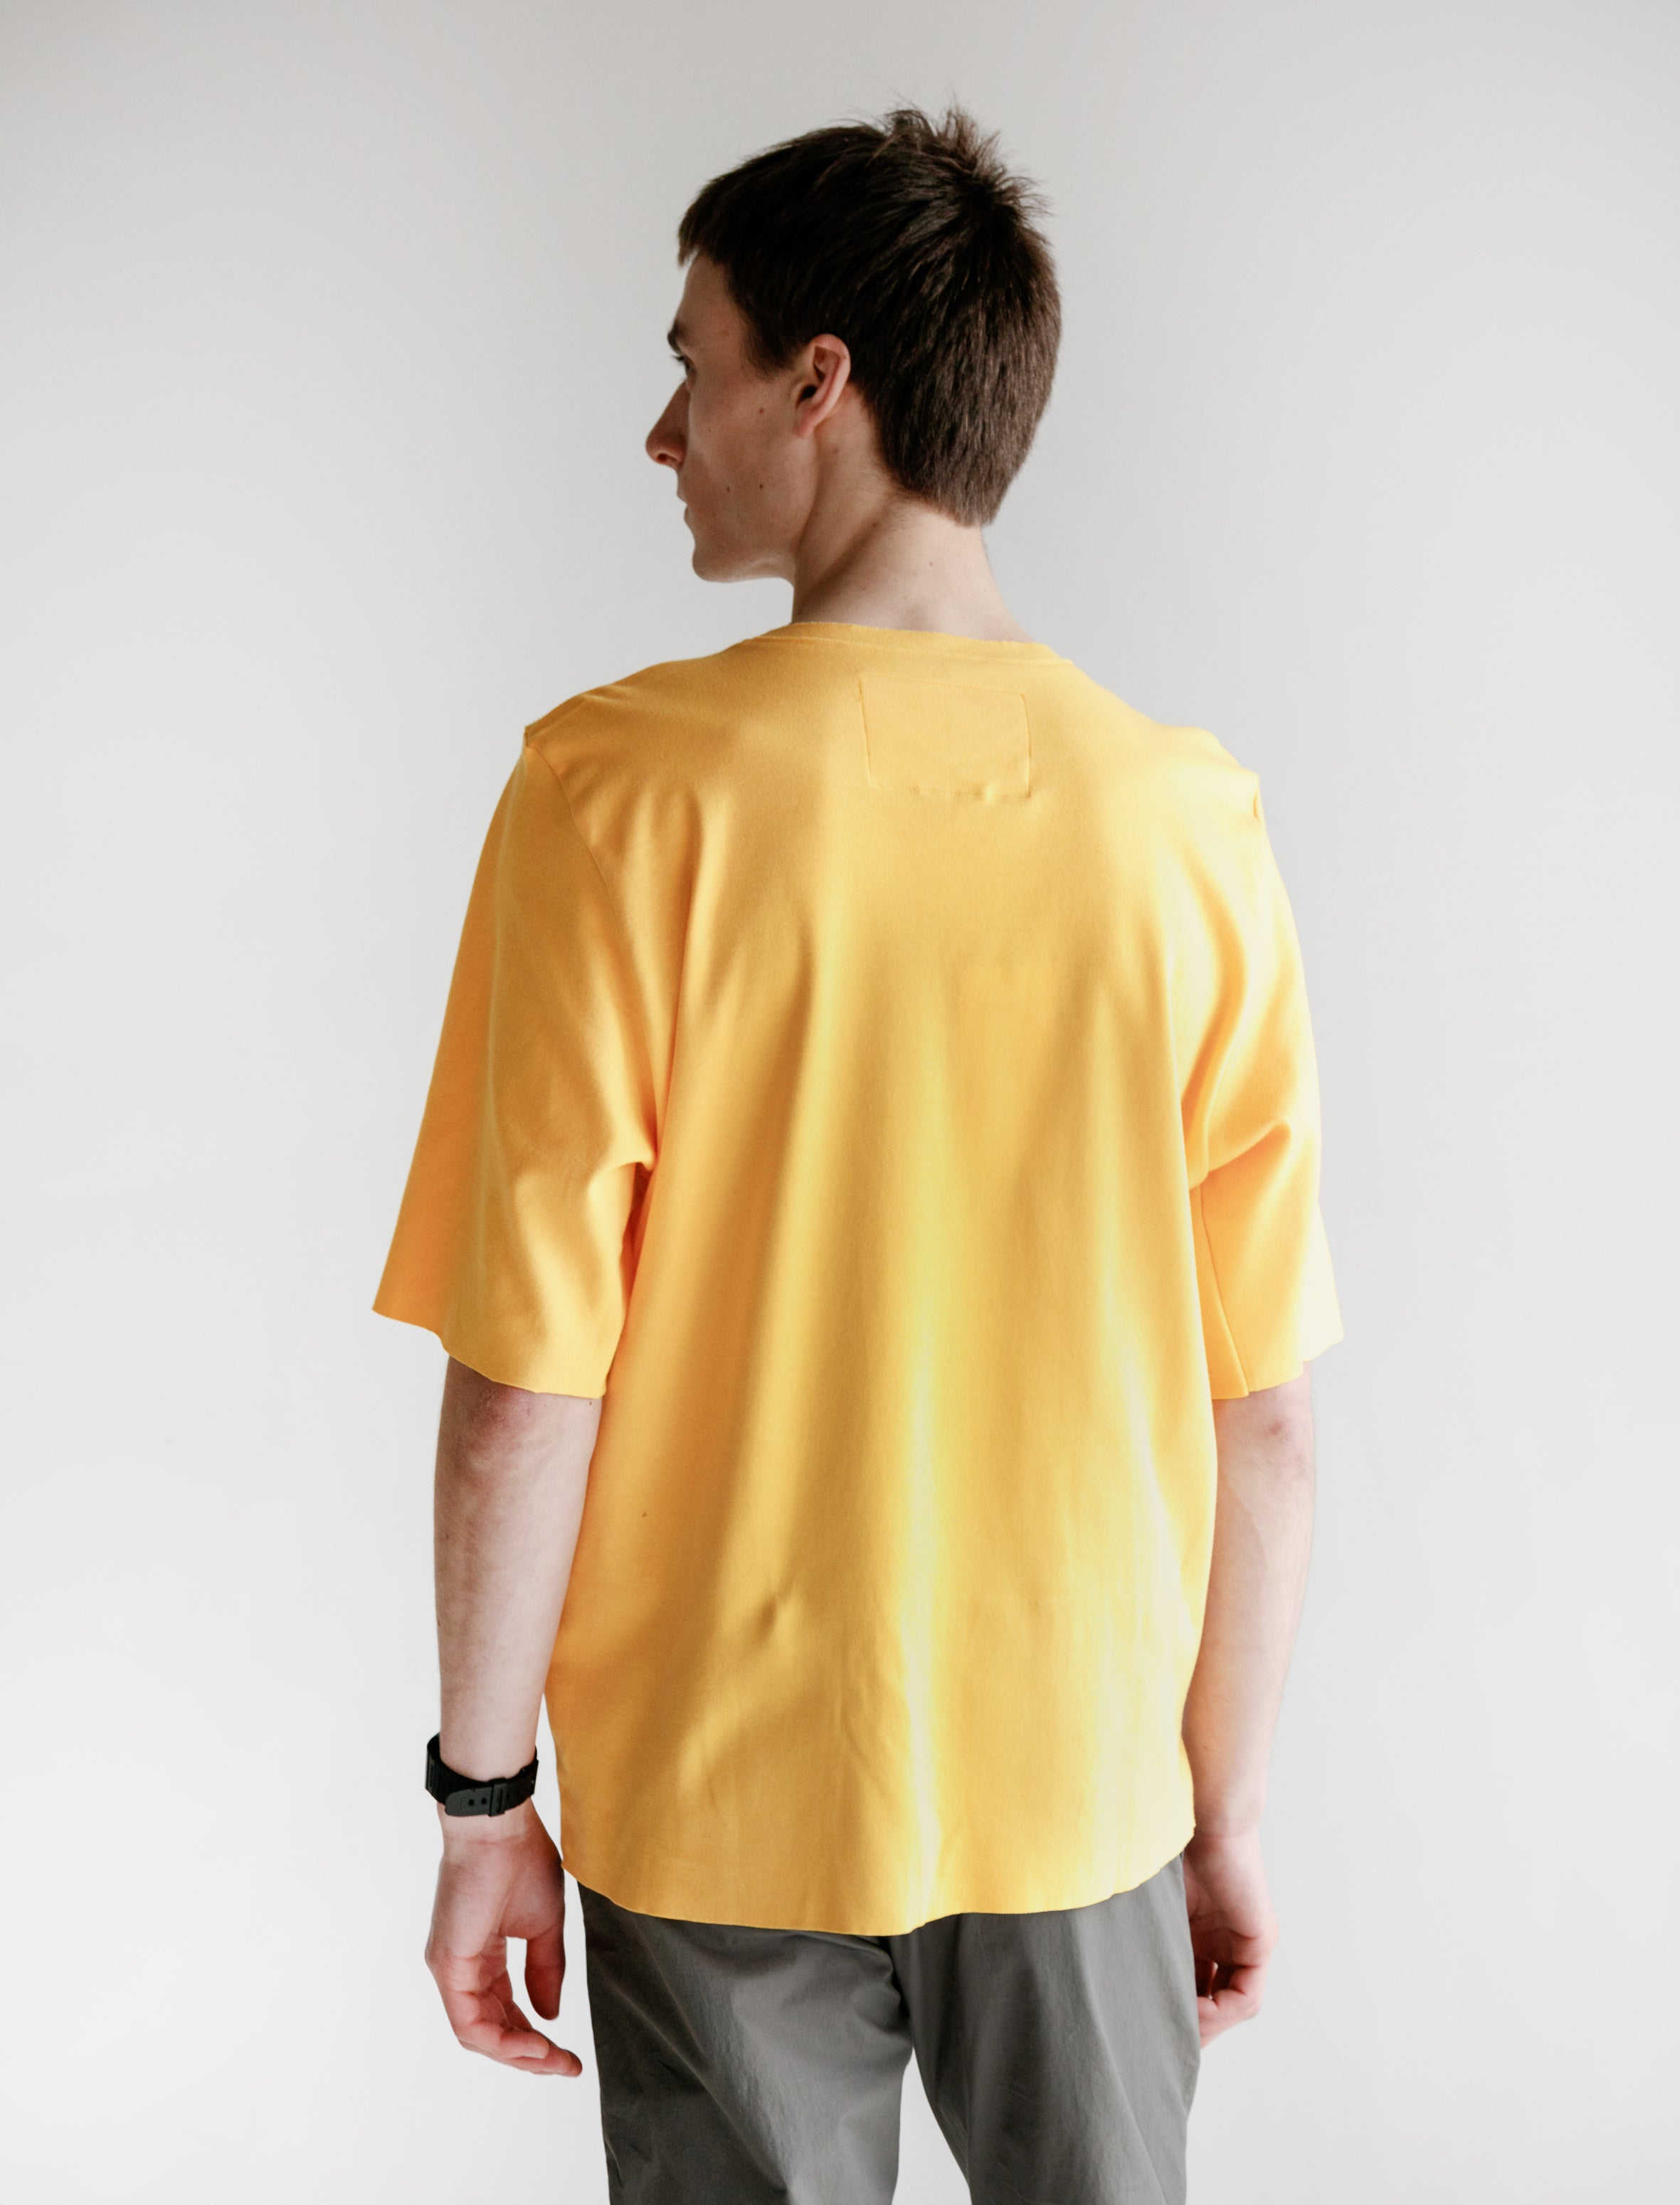 Camiel Fortgens Tailored Tee Cotton Jersey Yellow